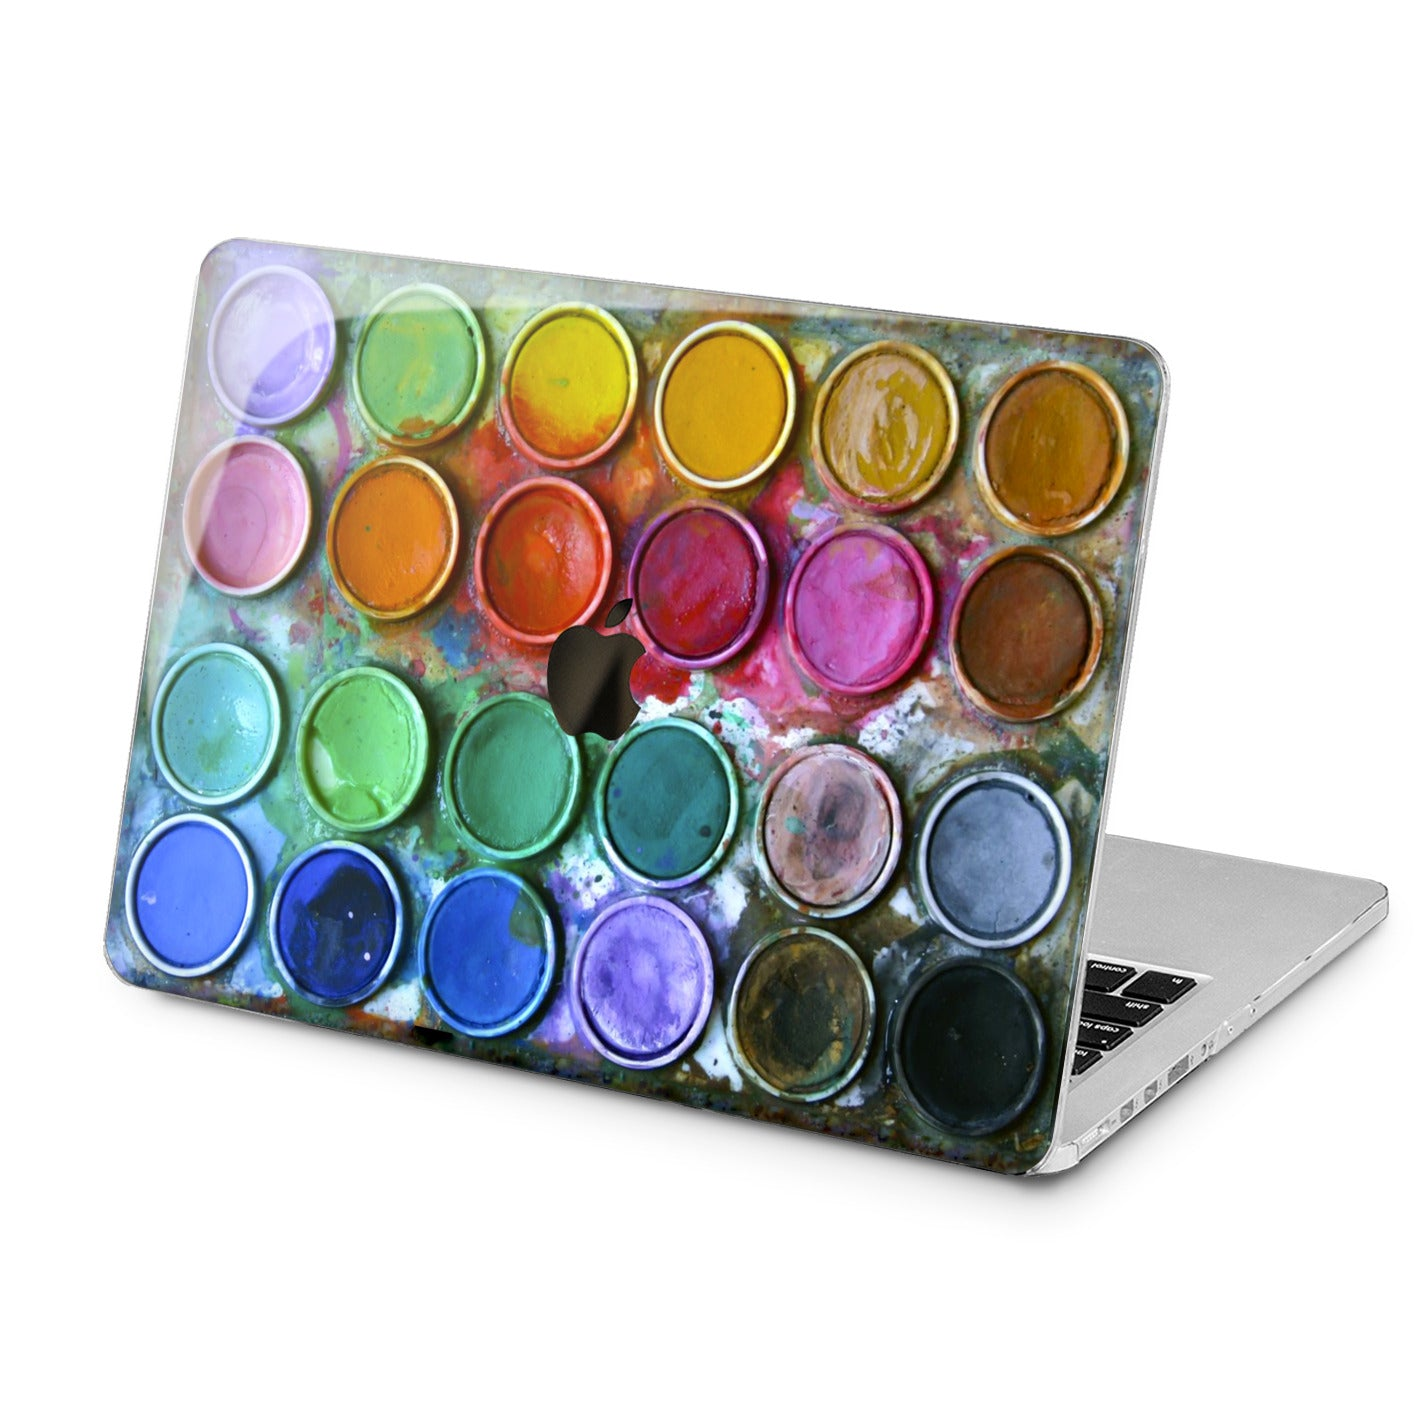 Lex Altern Lex Altern Paint Palette Case for your Laptop Apple Macbook.